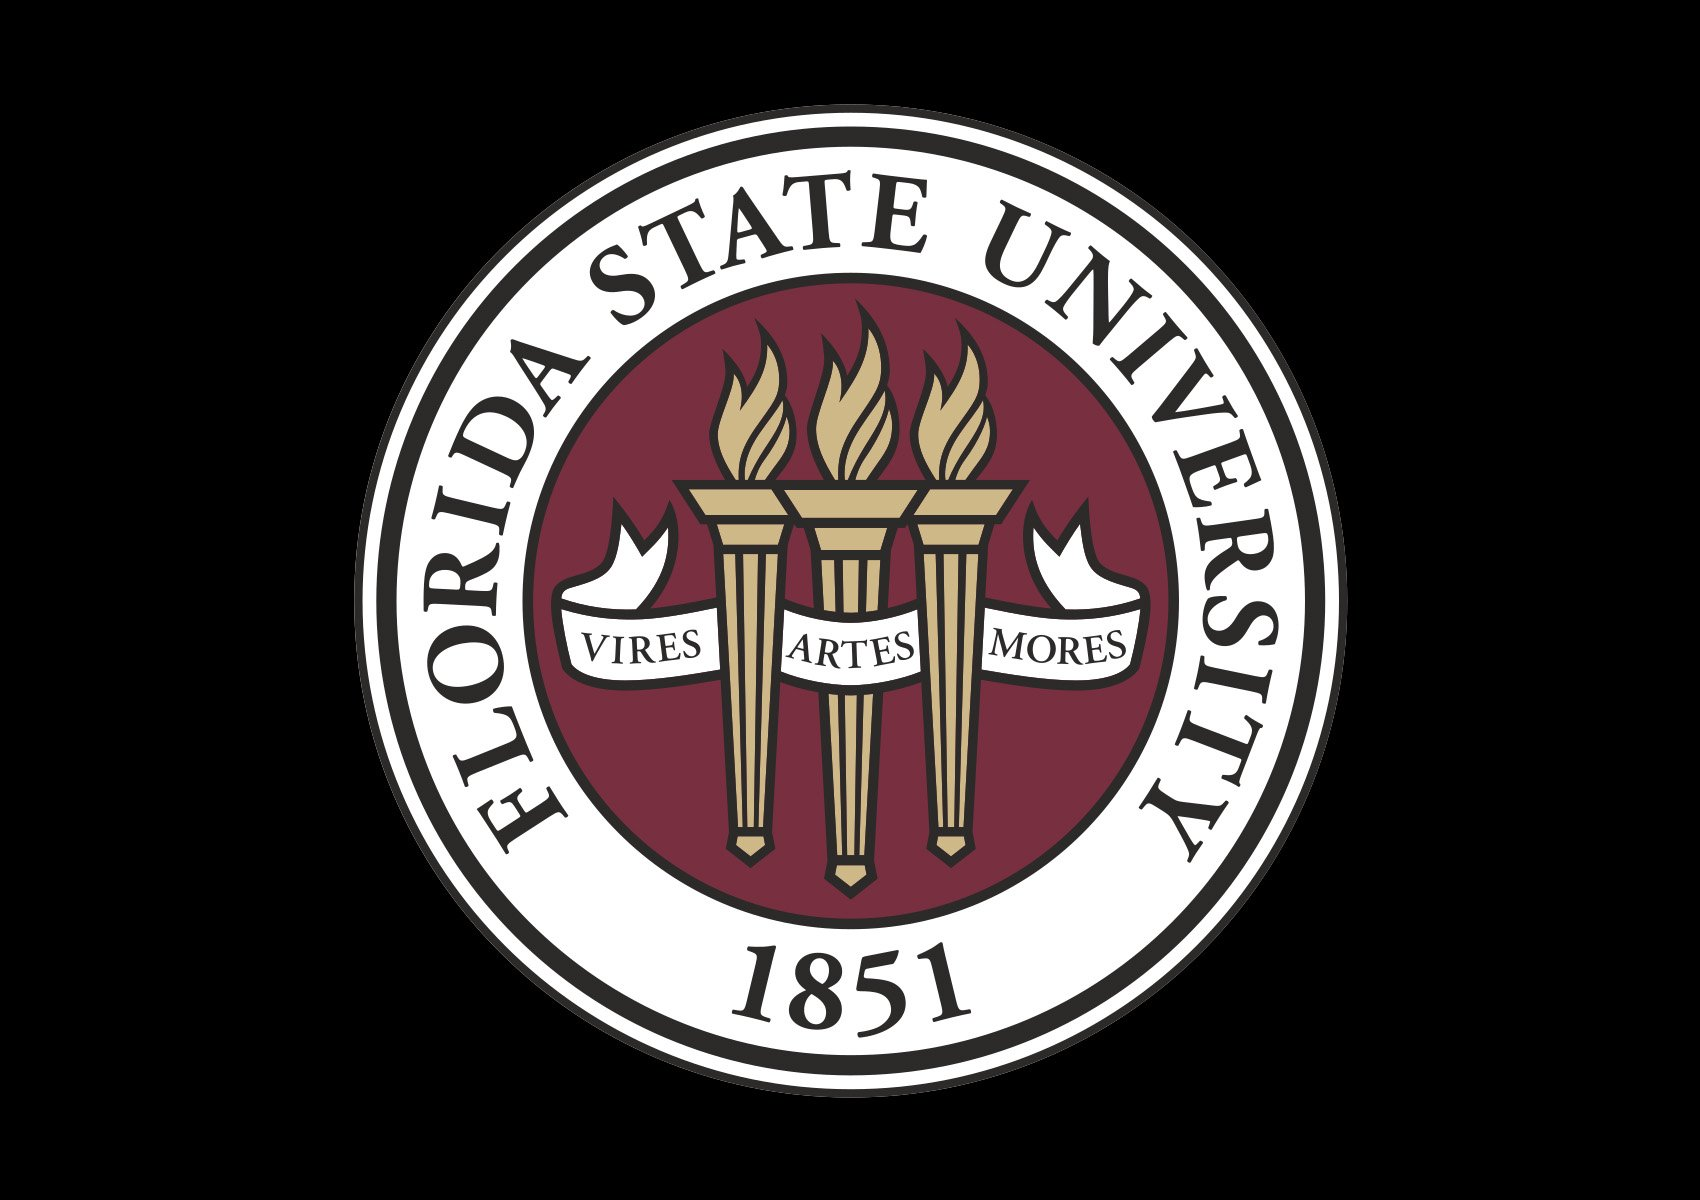 Florida state university logo florida state university symbol although the florida state university logo has undergone a modification in 2009 the main symbols remained where they were the outer ring grew thinner in buycottarizona